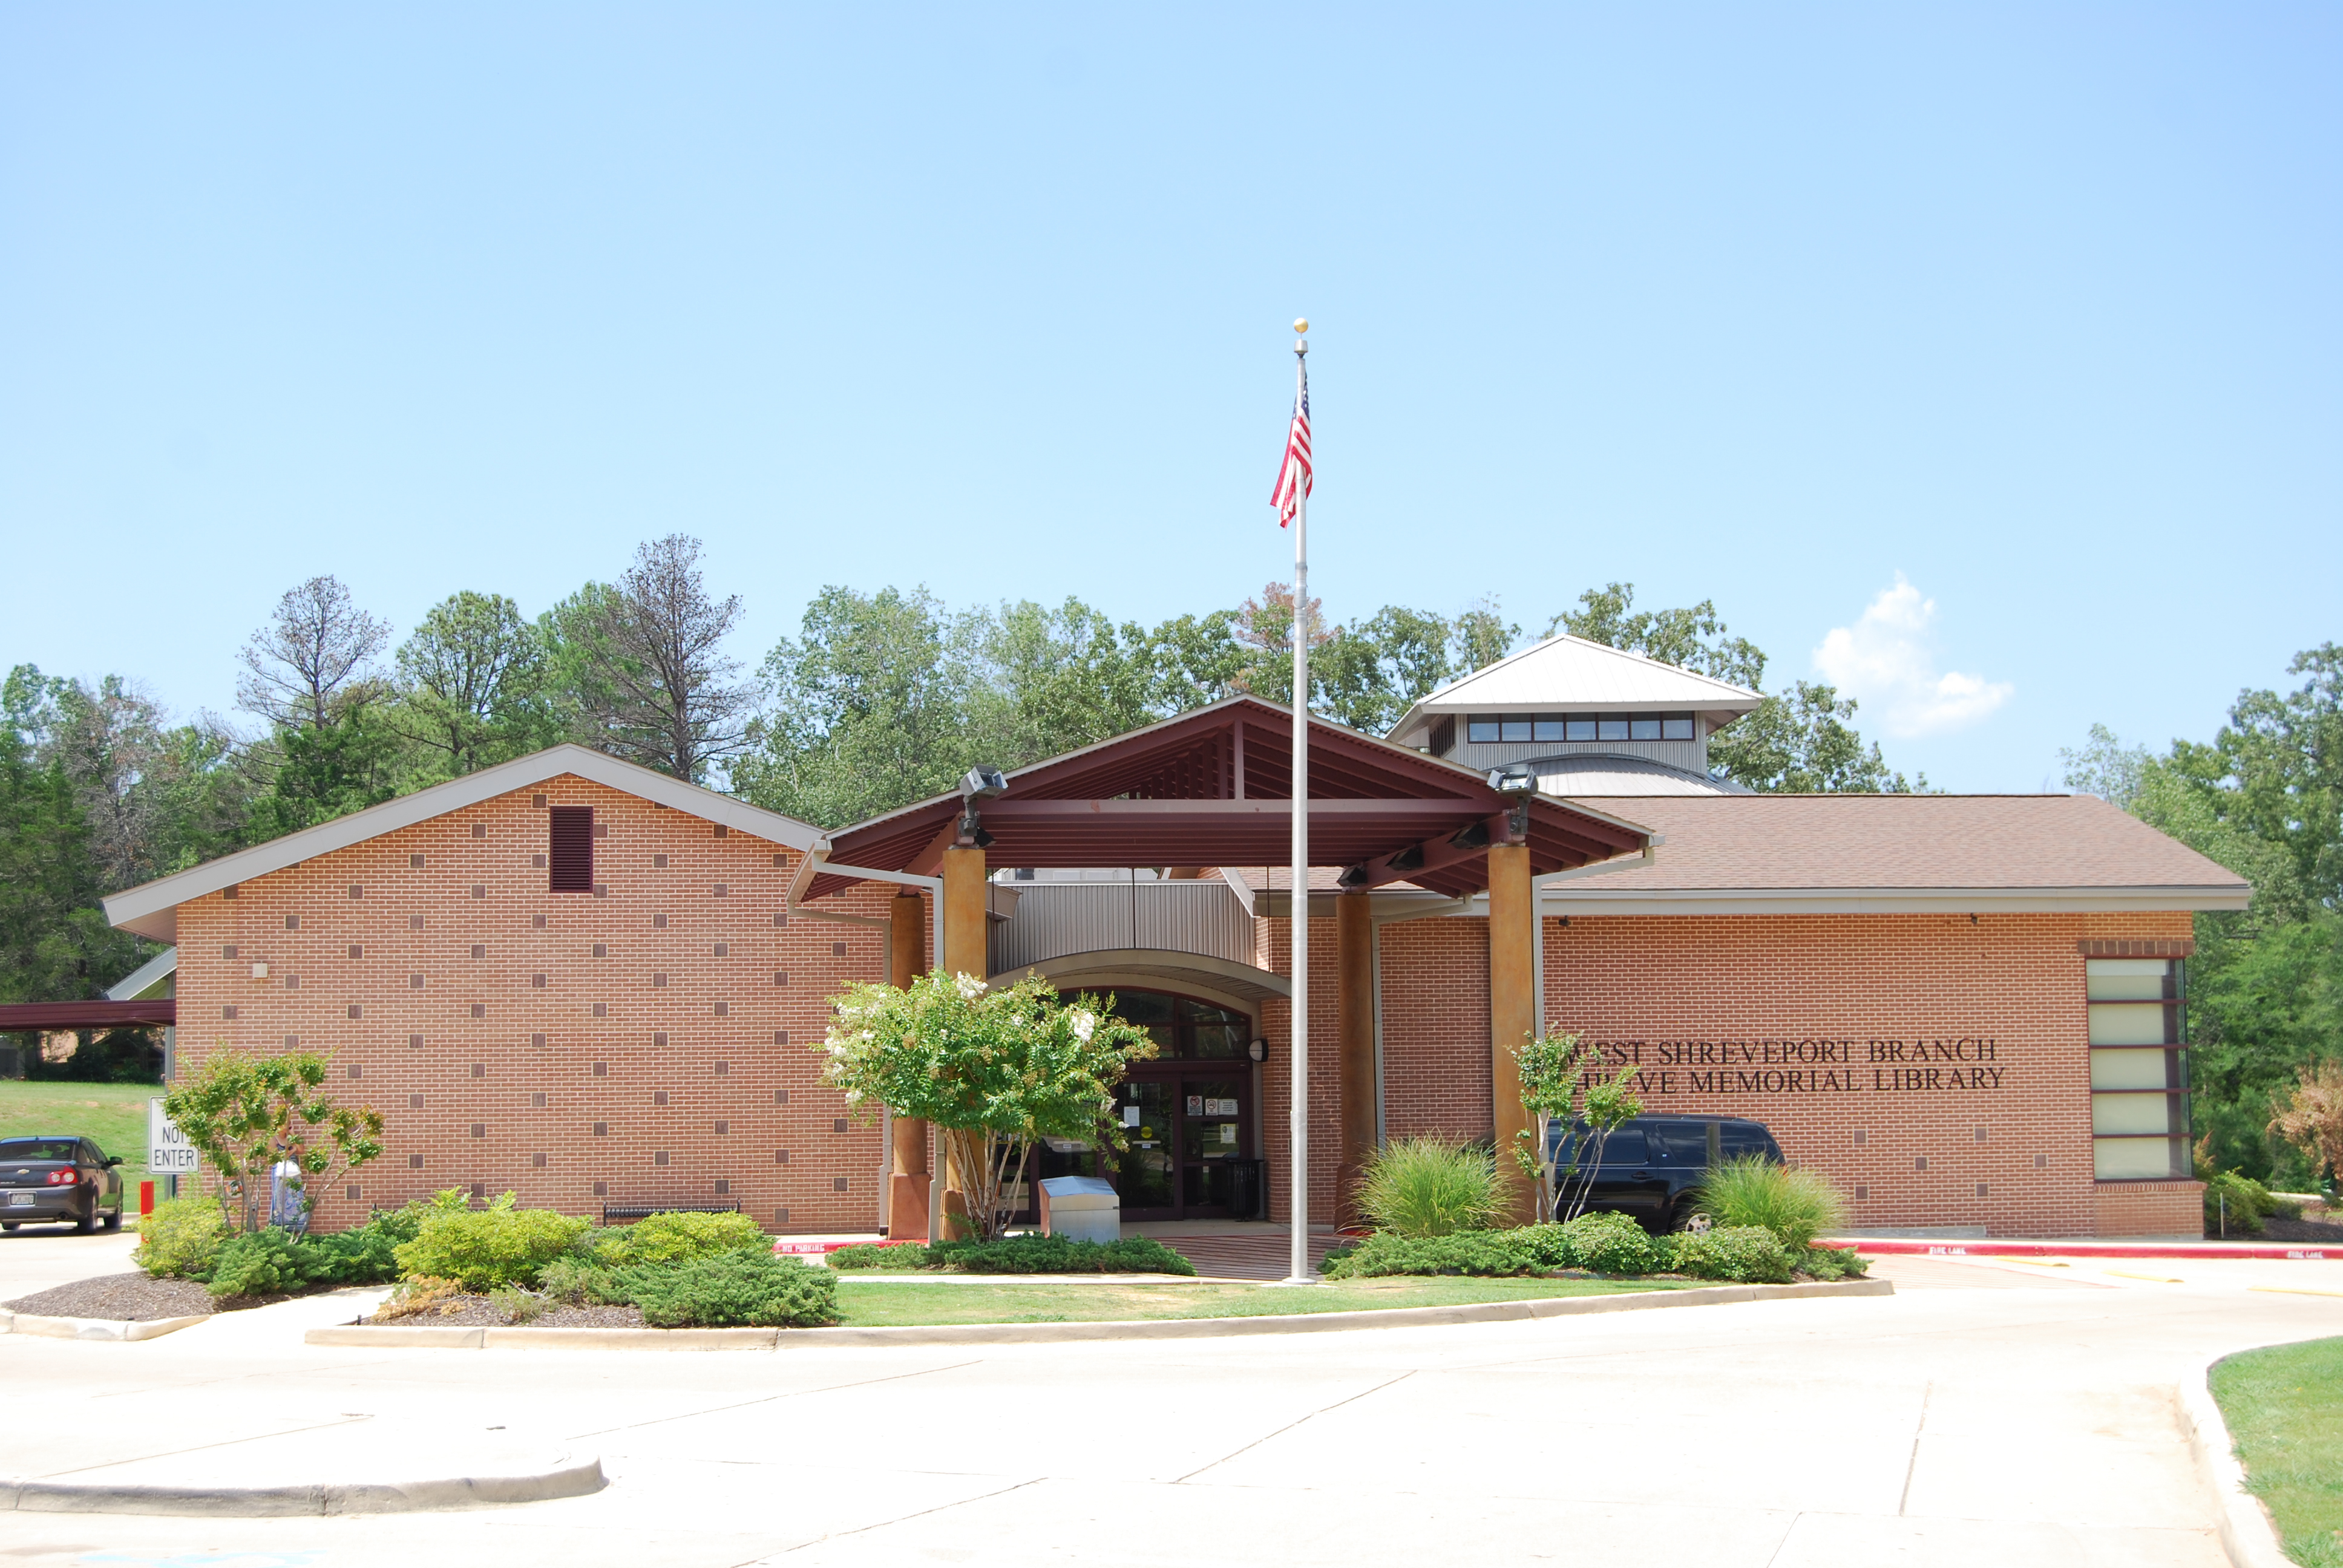 West Shreveport Branch